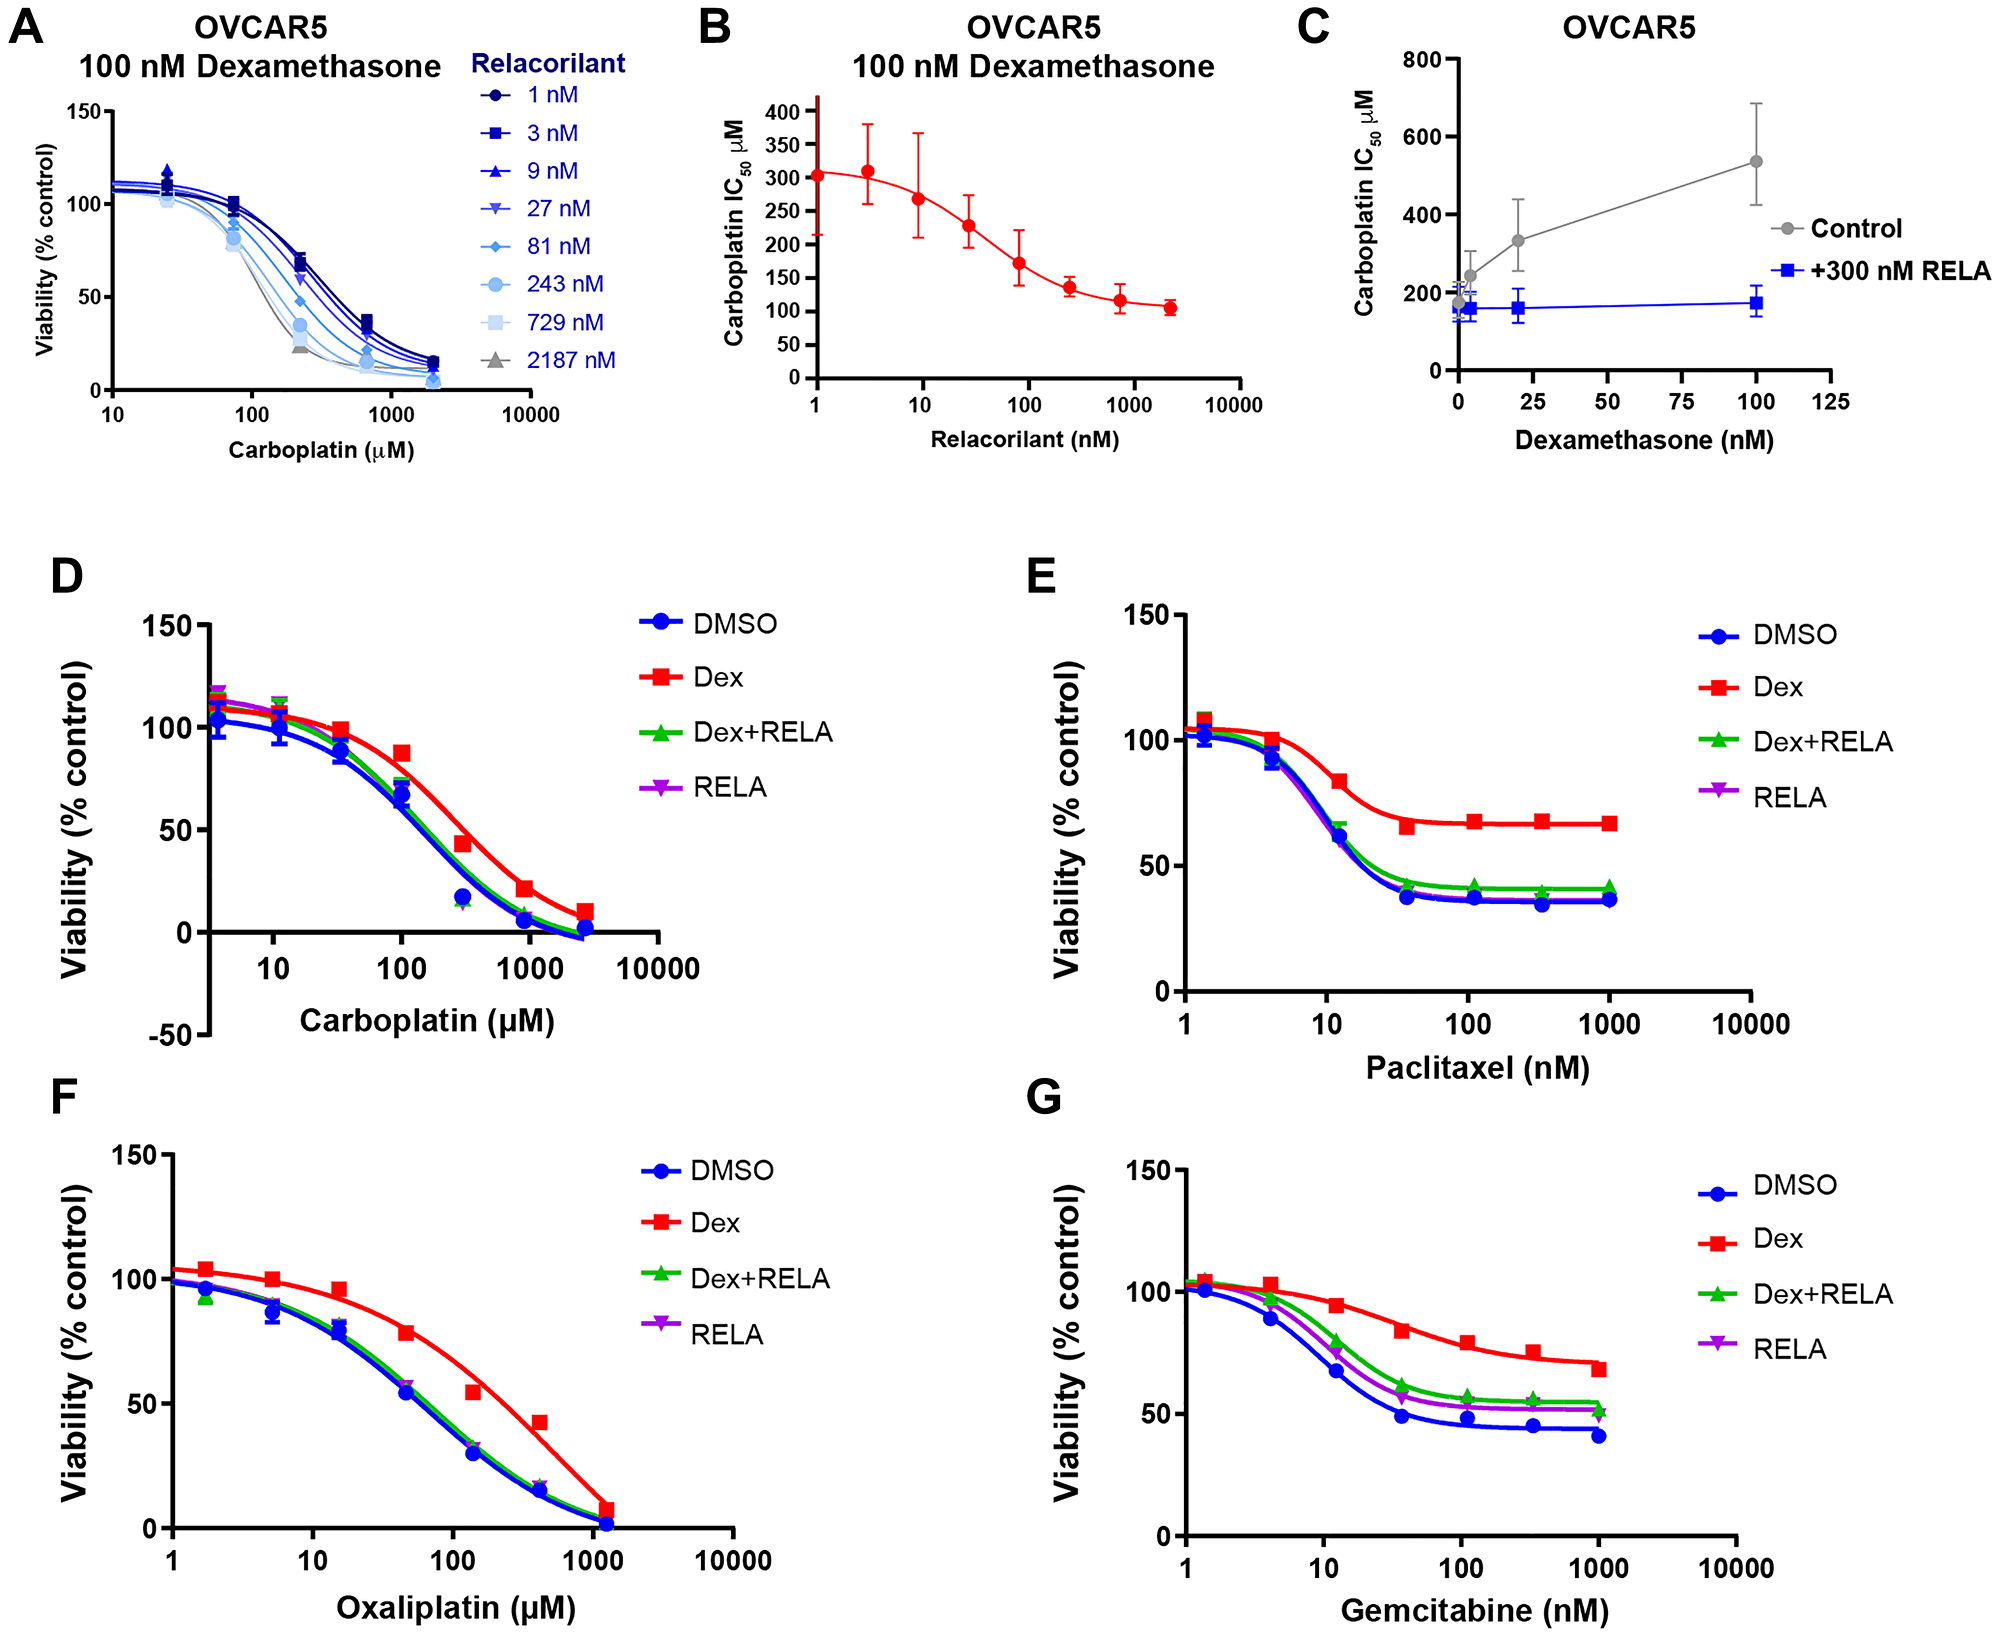 Potency and efficacy of cytotoxic agents are improved by relacorilant in OVCAR5 cells.